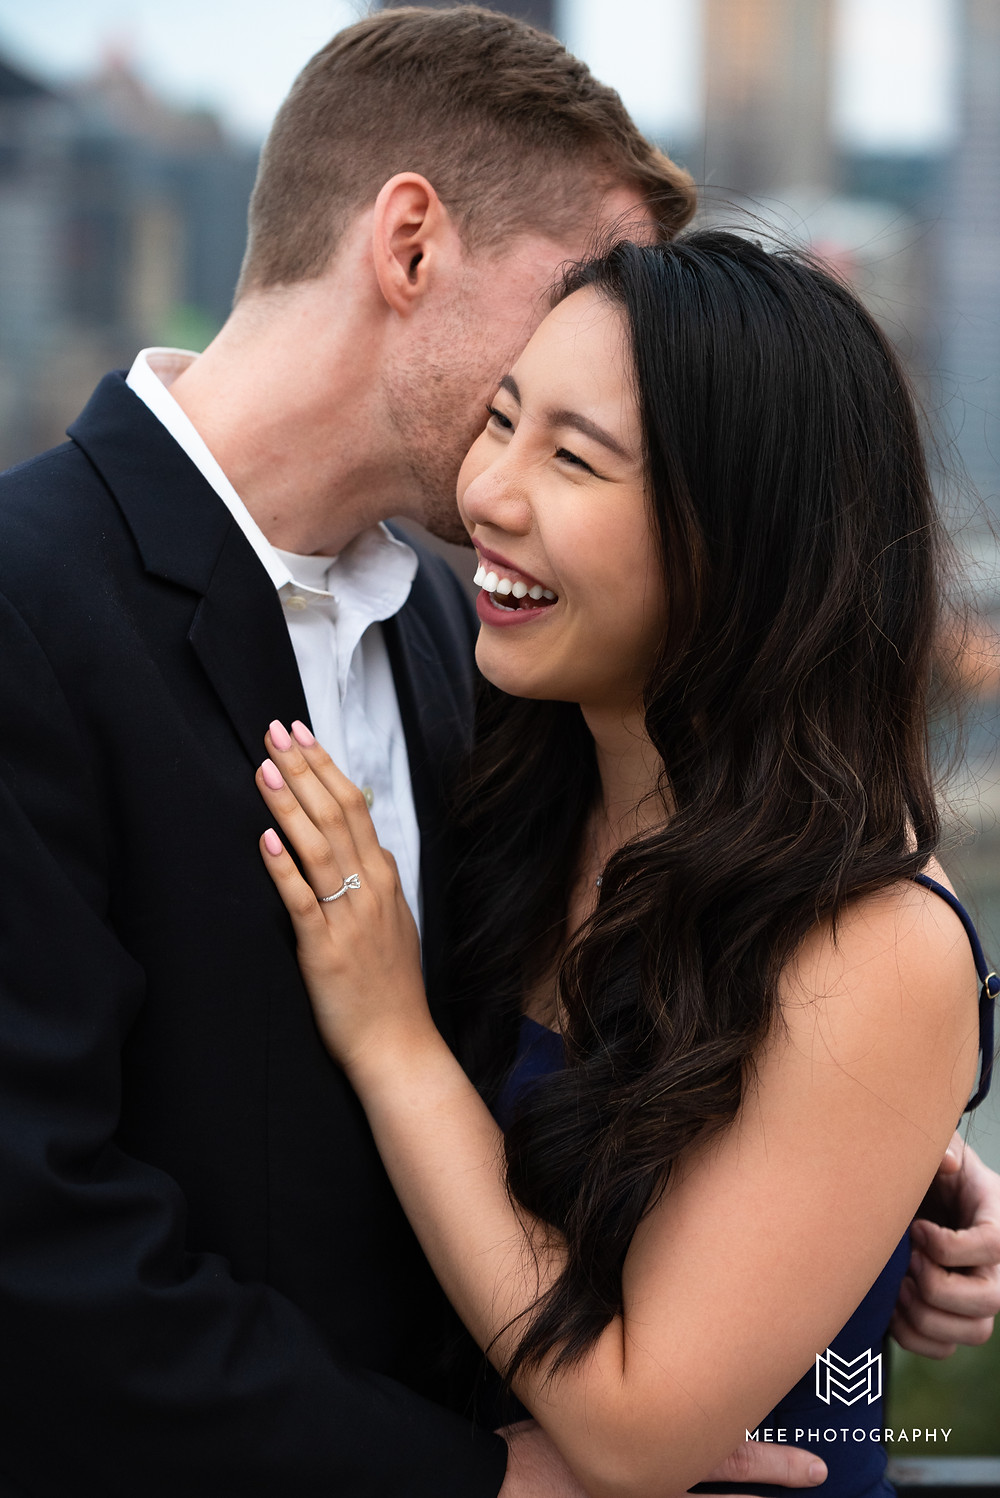 Couples wedding and engagement photographer in Pittsburgh